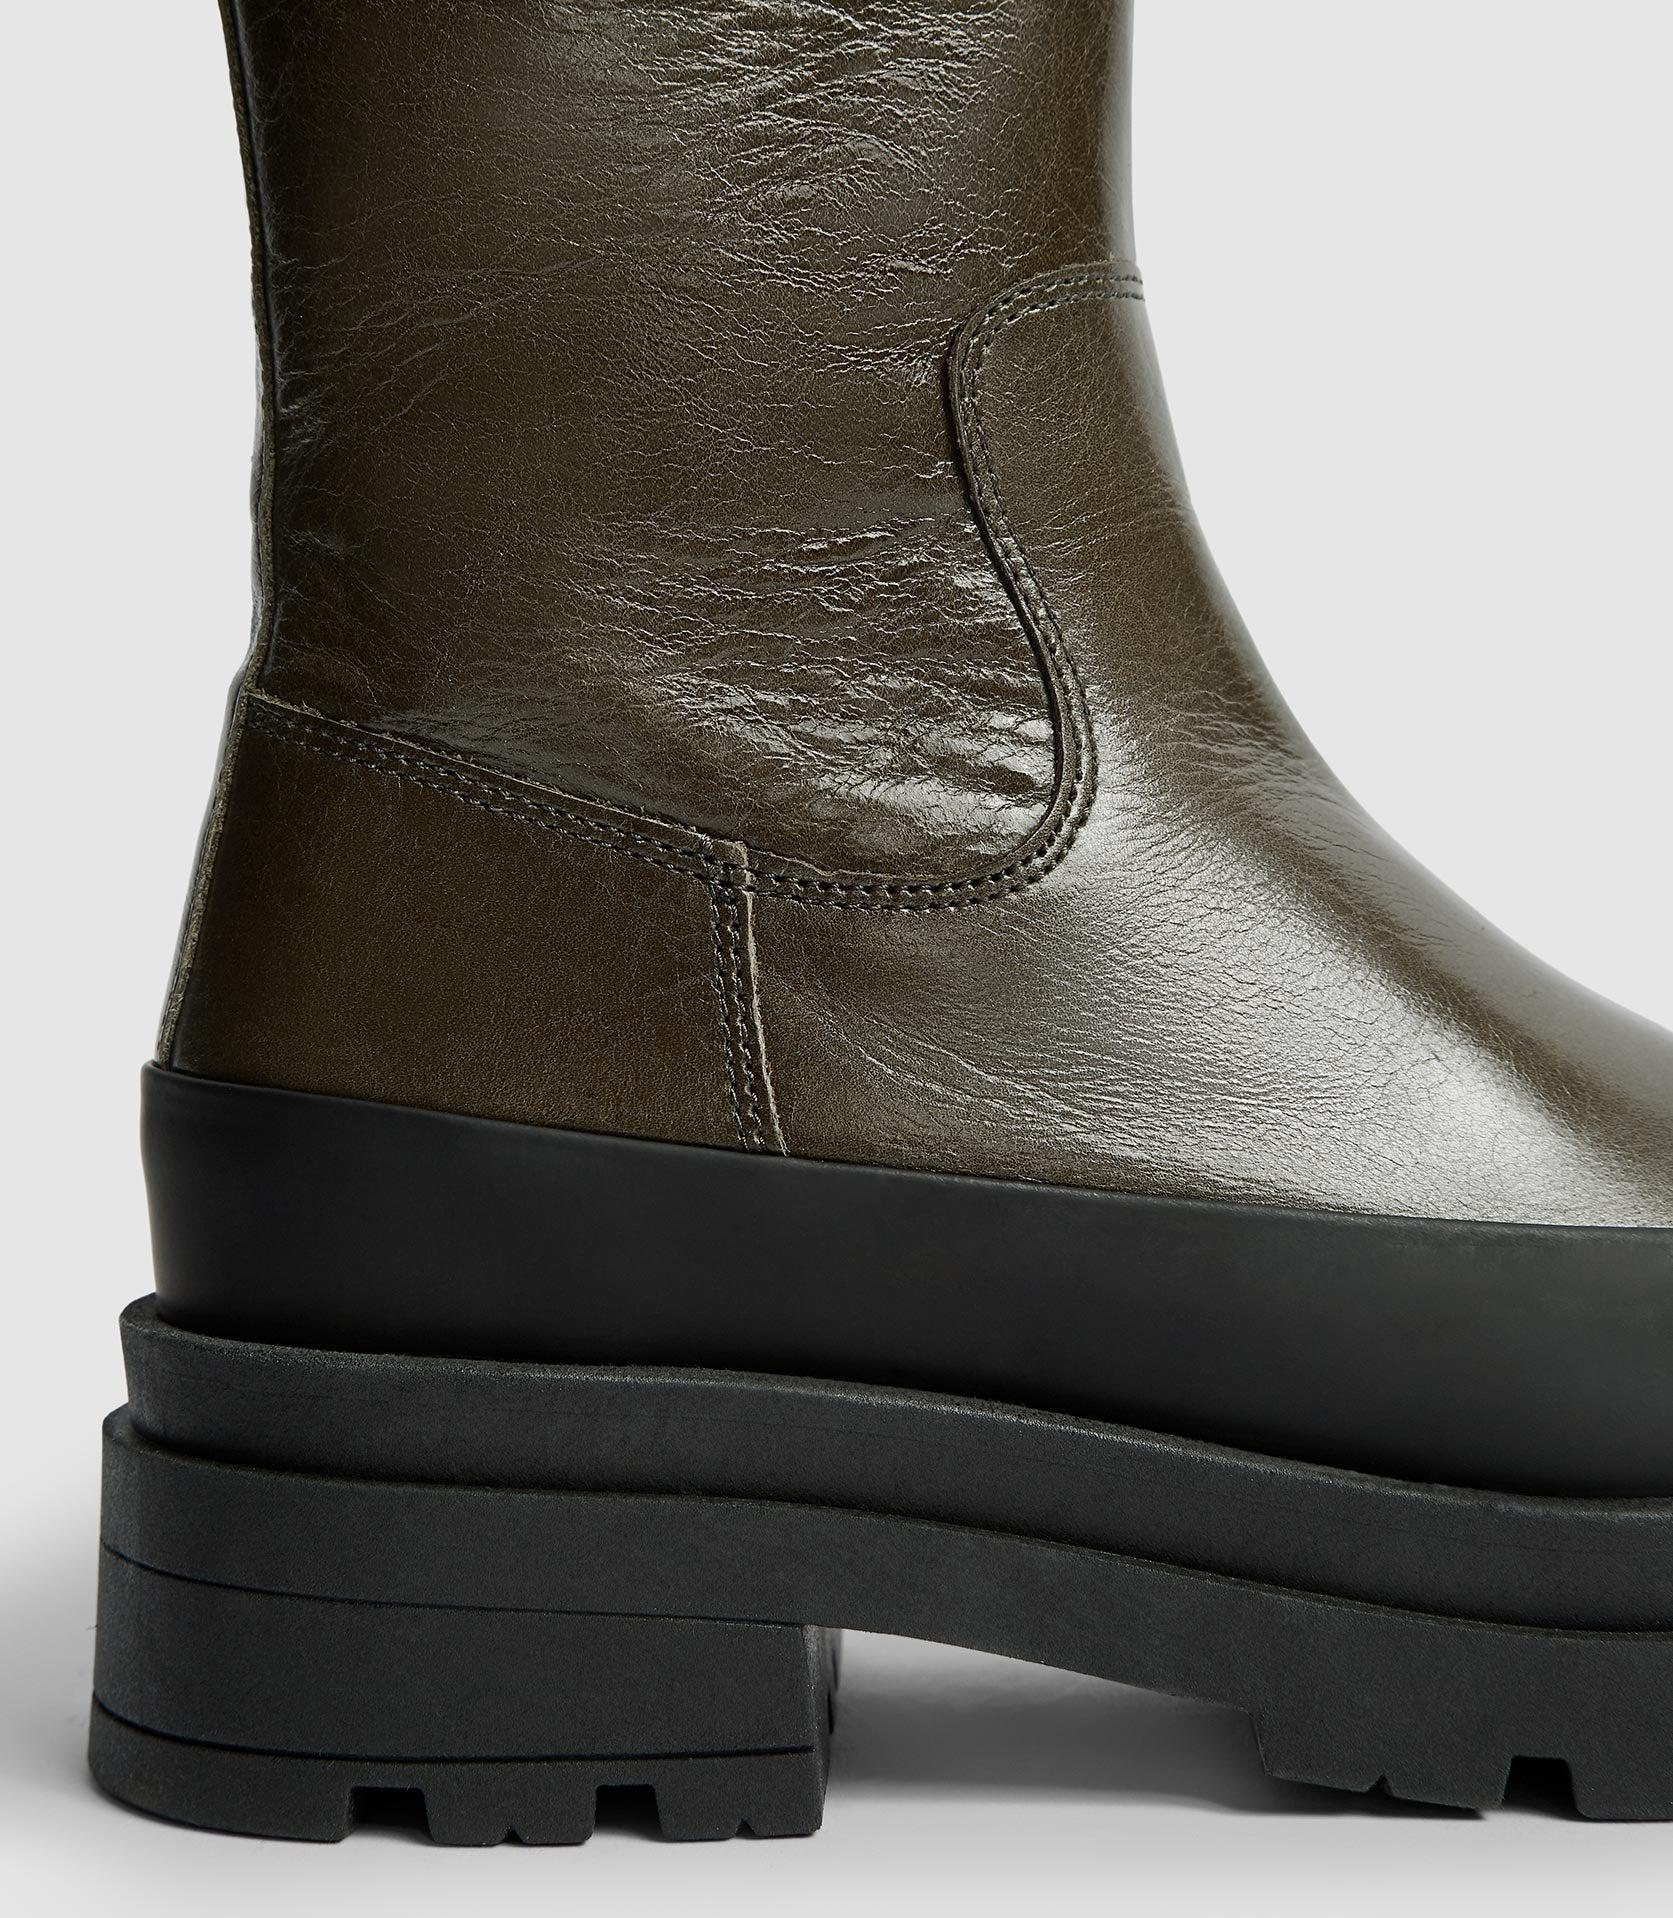 AVE - LEATHER STOMPER BOOTS 3